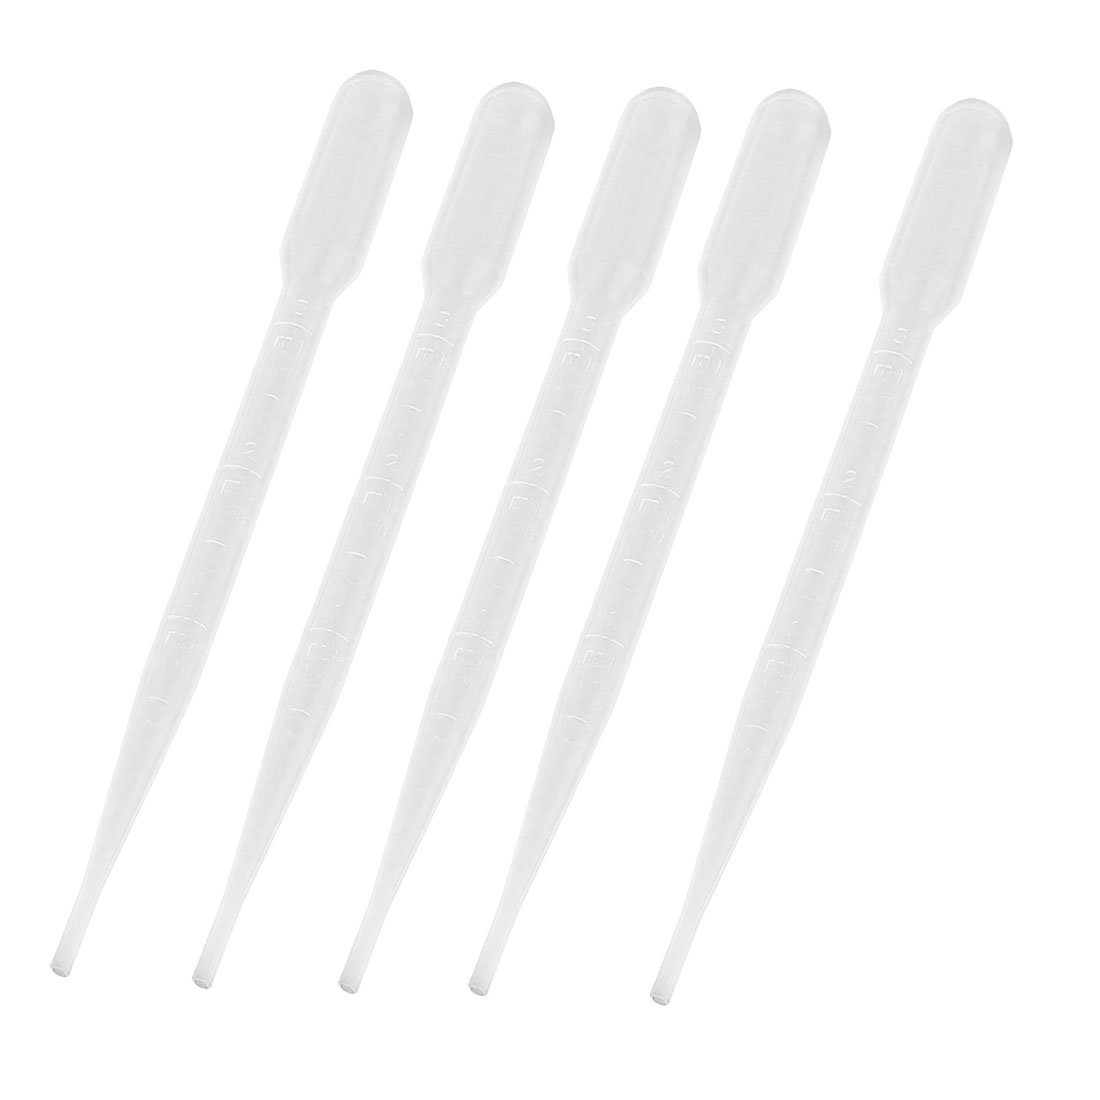 5 Pcs 3ML Capacity Lab Laboratory Clear Pipettes Droppers 6.1' Long Sourcingmap a13111900ux1451